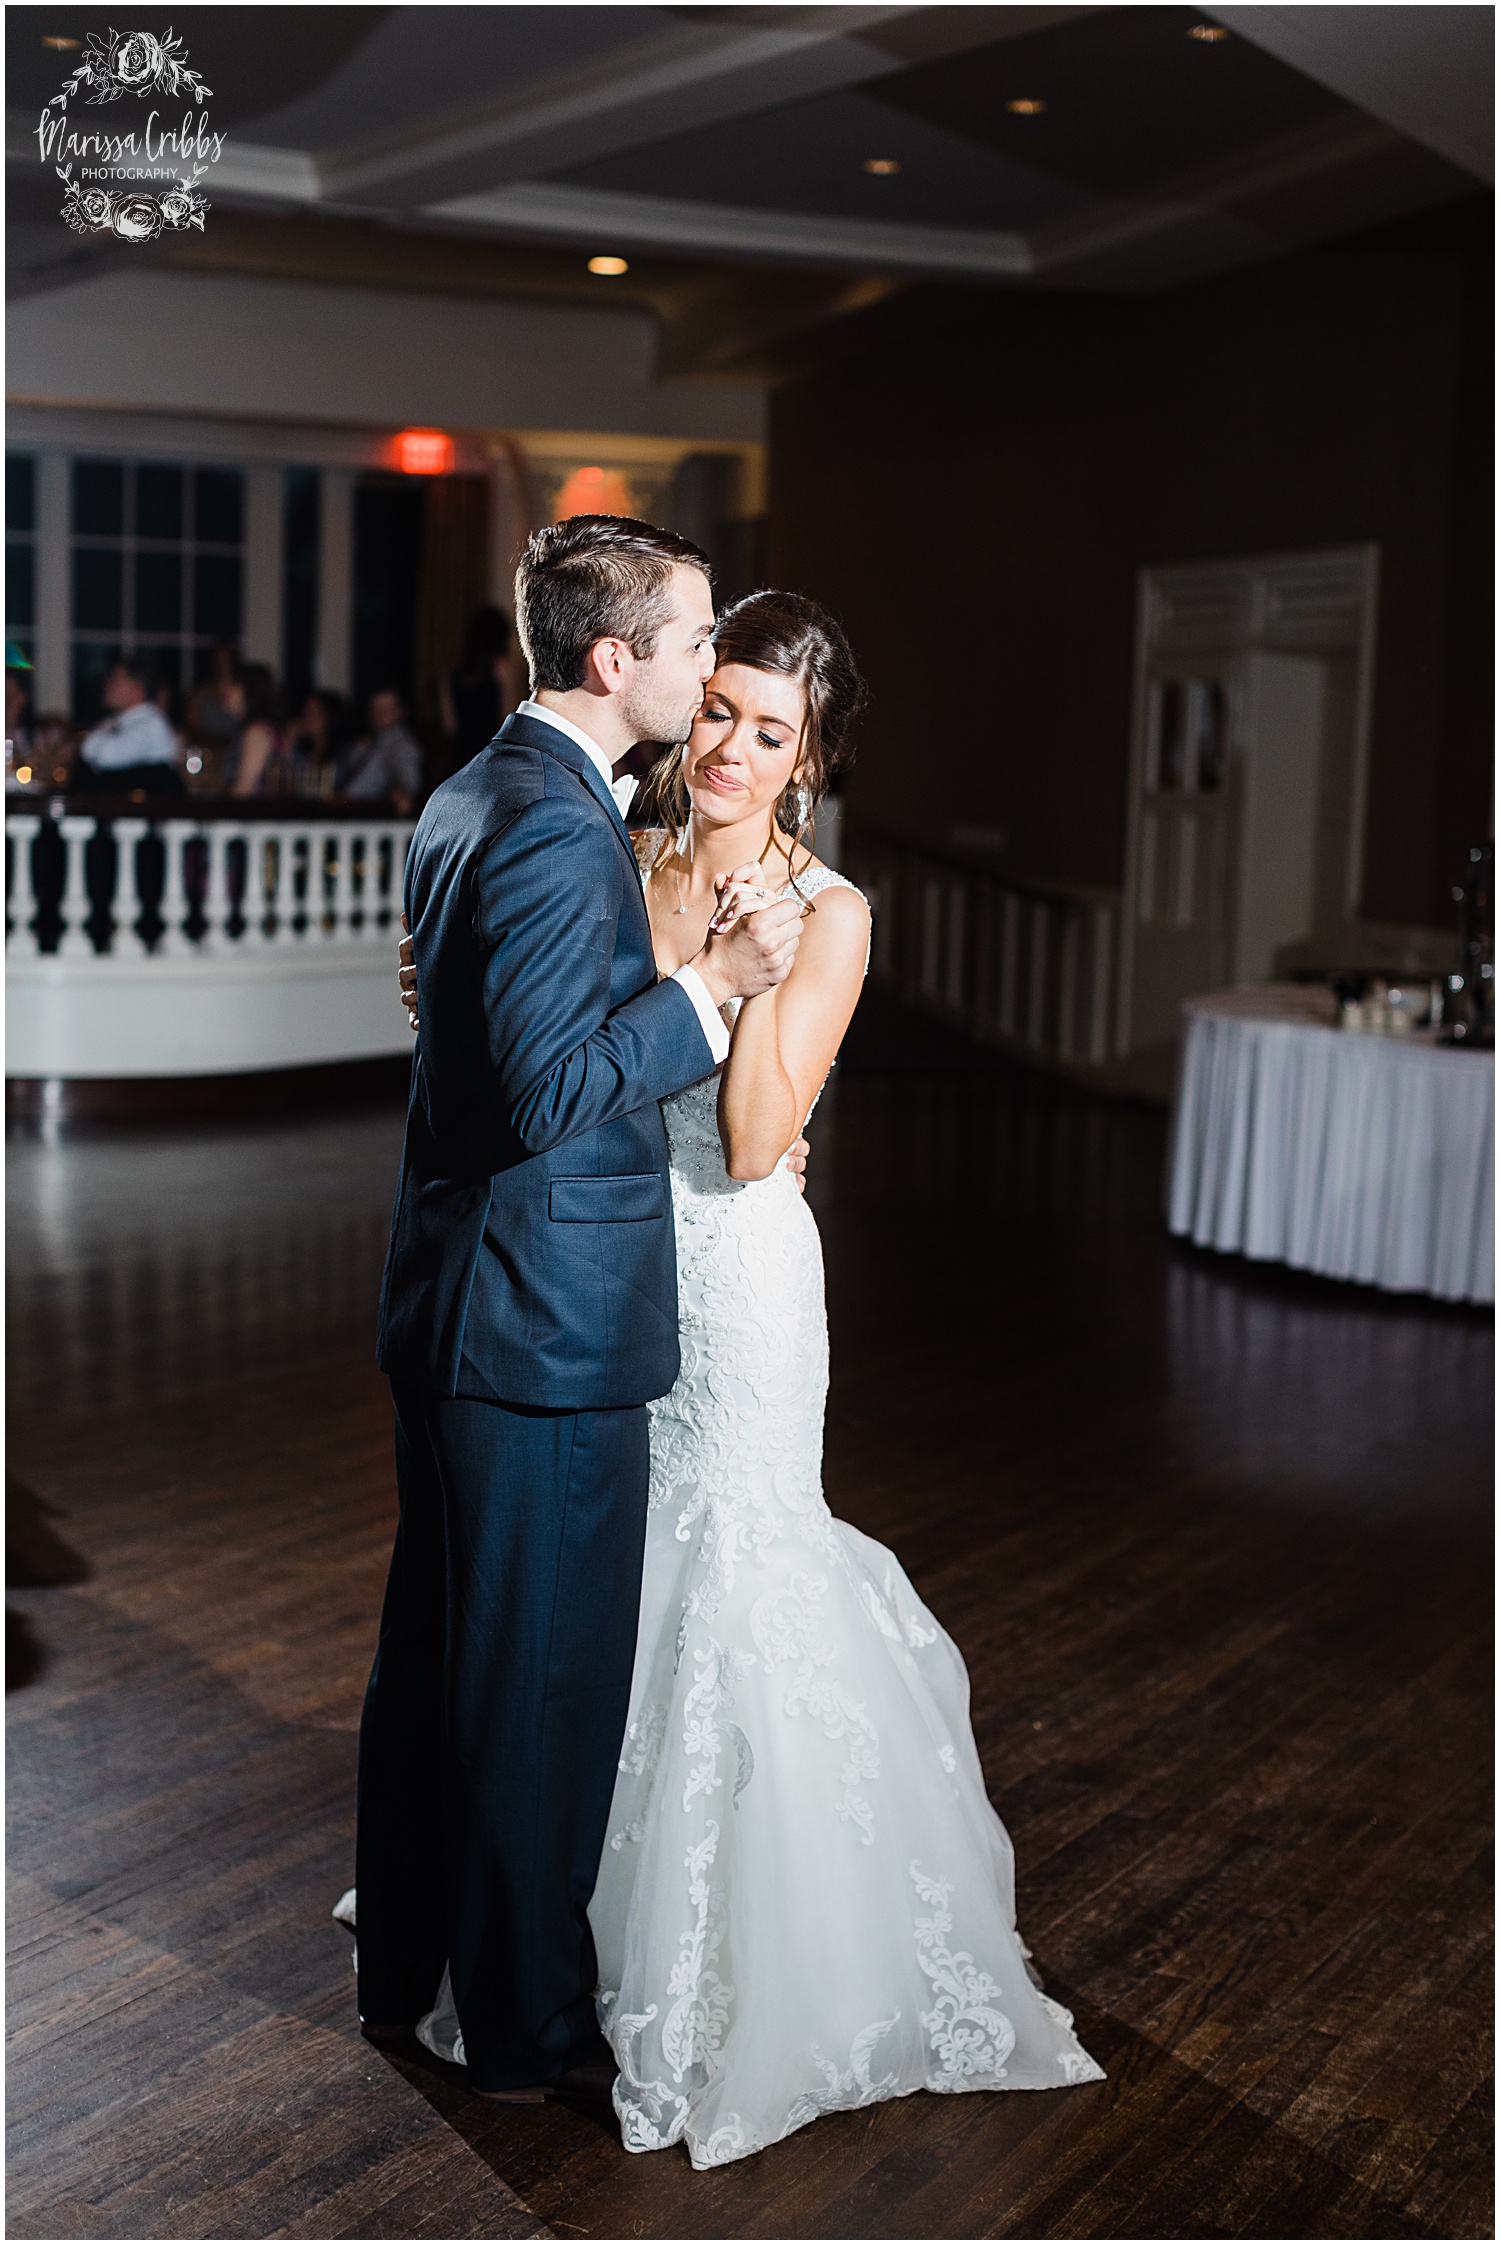 MEGAN & DEREK WEDDING BLOG | MARISSA CRIBBS PHOTOGRAPHY_8229.jpg